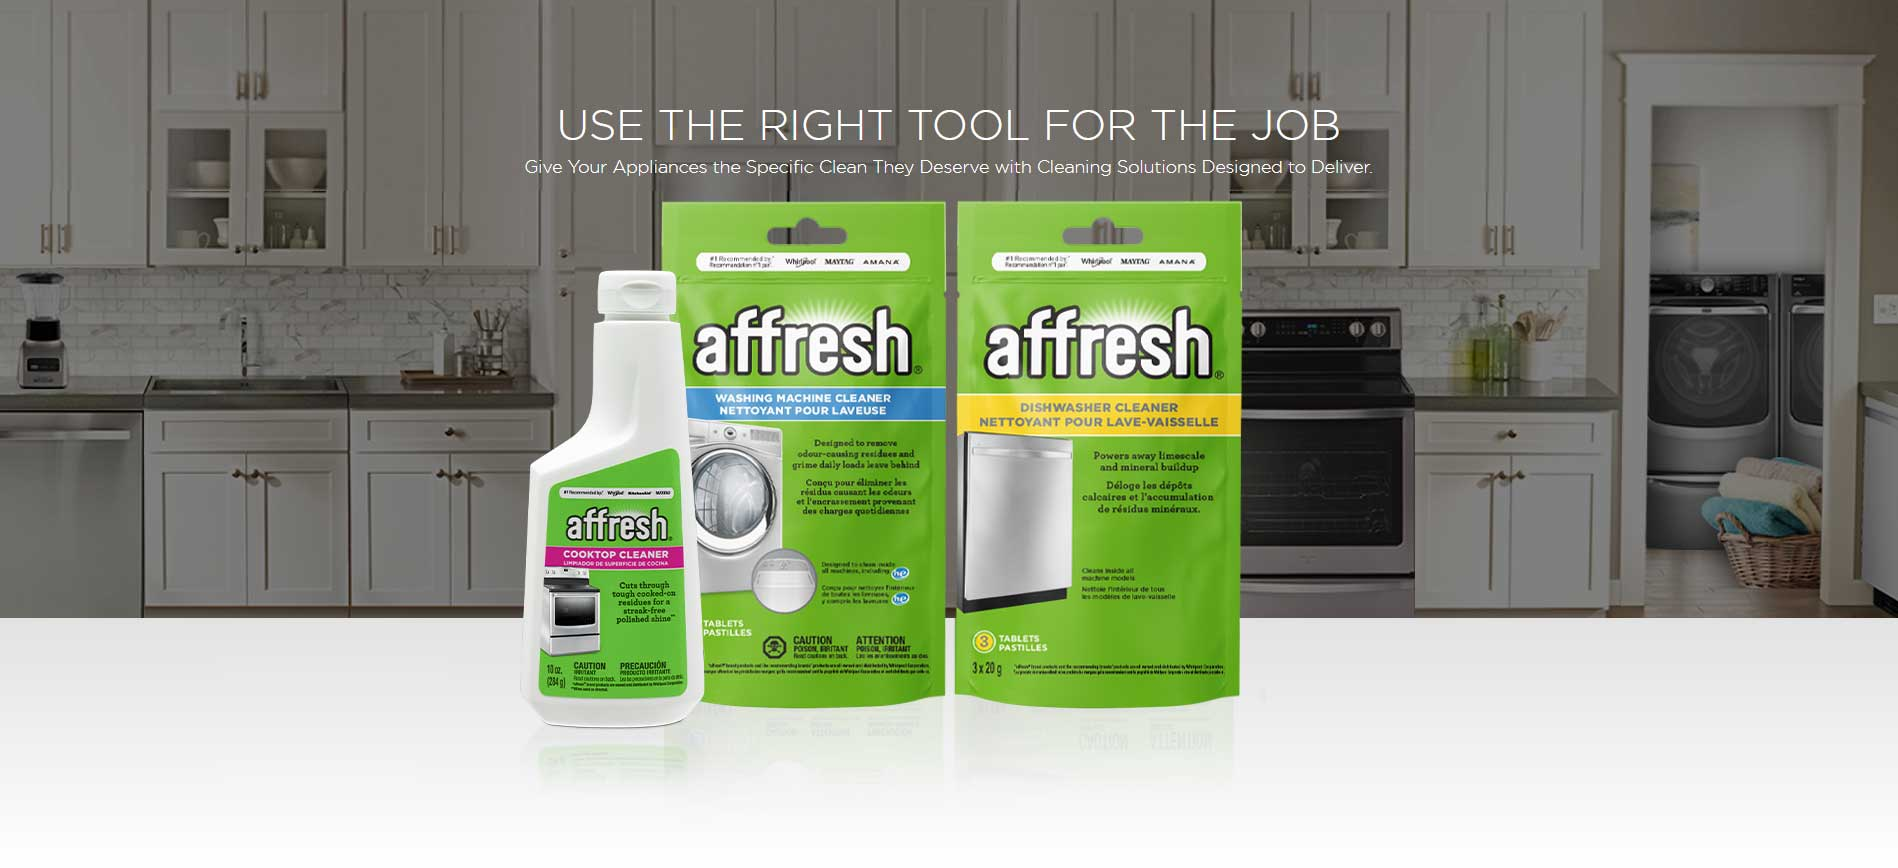 USE THE RIGHT TOOL FOR THE JOB - Give Your Appliances the Specific Clean They Deserve with Cleaning Solutions Designed to Deliver.